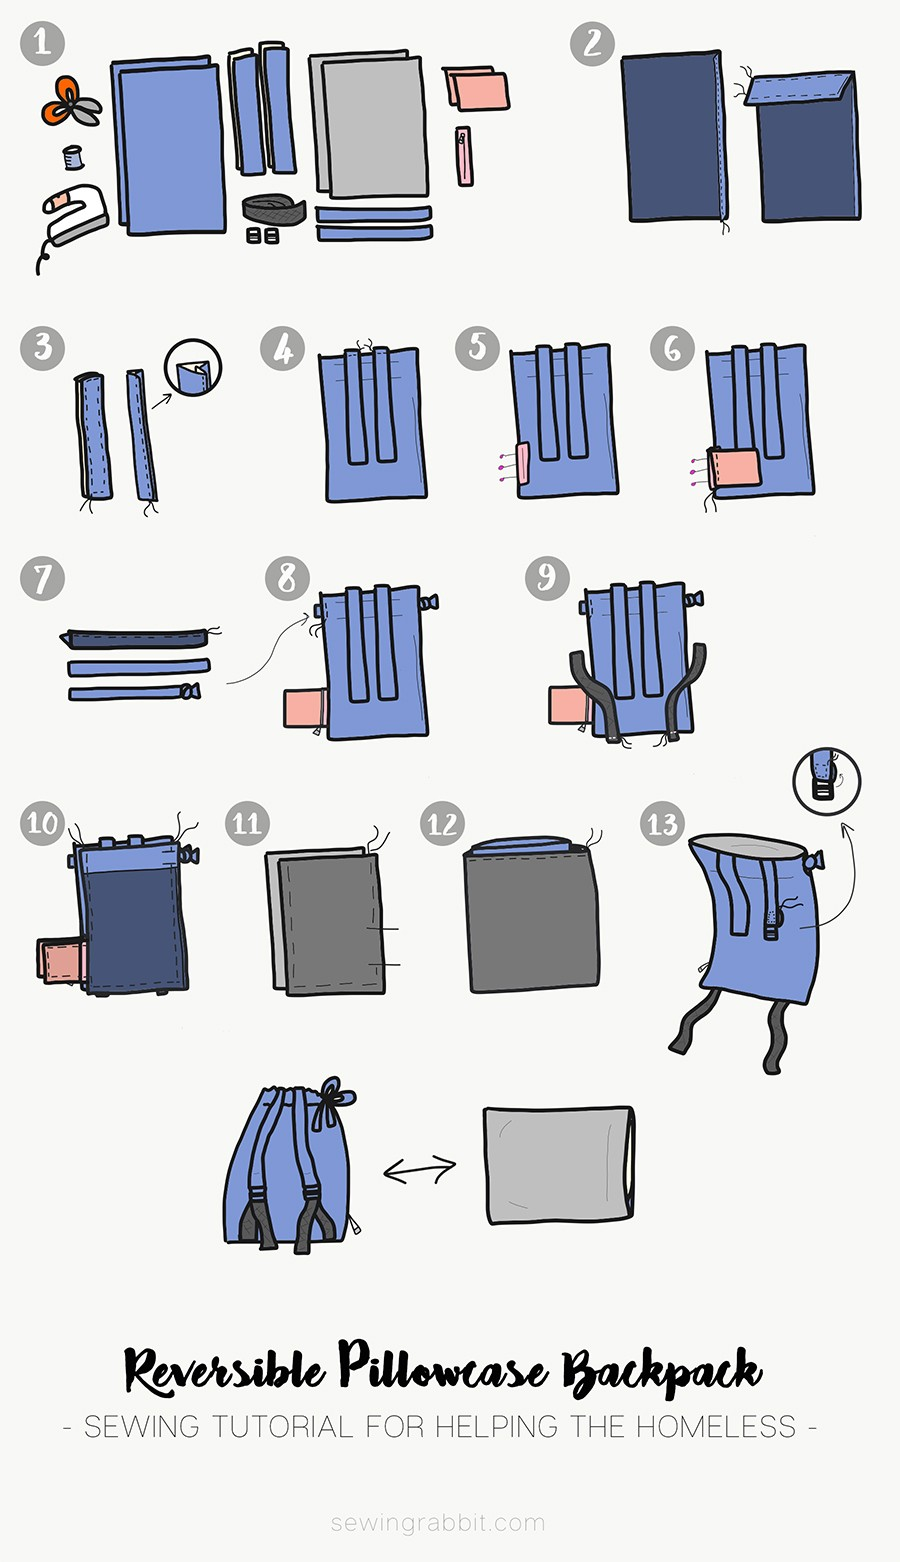 how to make a pillowcase backpack